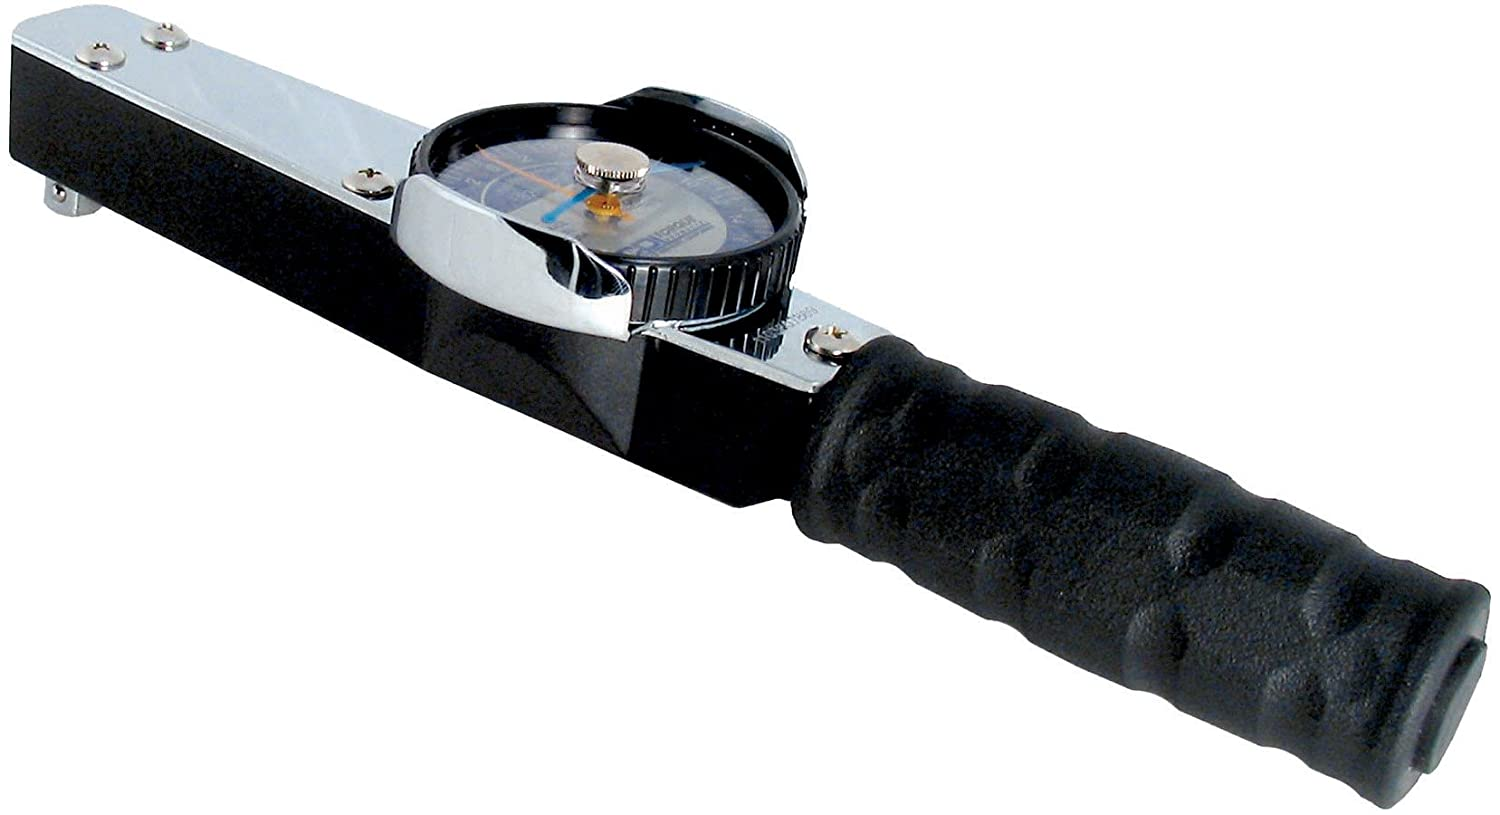 CDI Torque 2502LDIN Dial Indicating Torque Wrench, 3/8' Drive, Dual Scale, 0' to 250' Lbs 3/8 Drive 0 to 250 Lbs JH Williams Tool Group